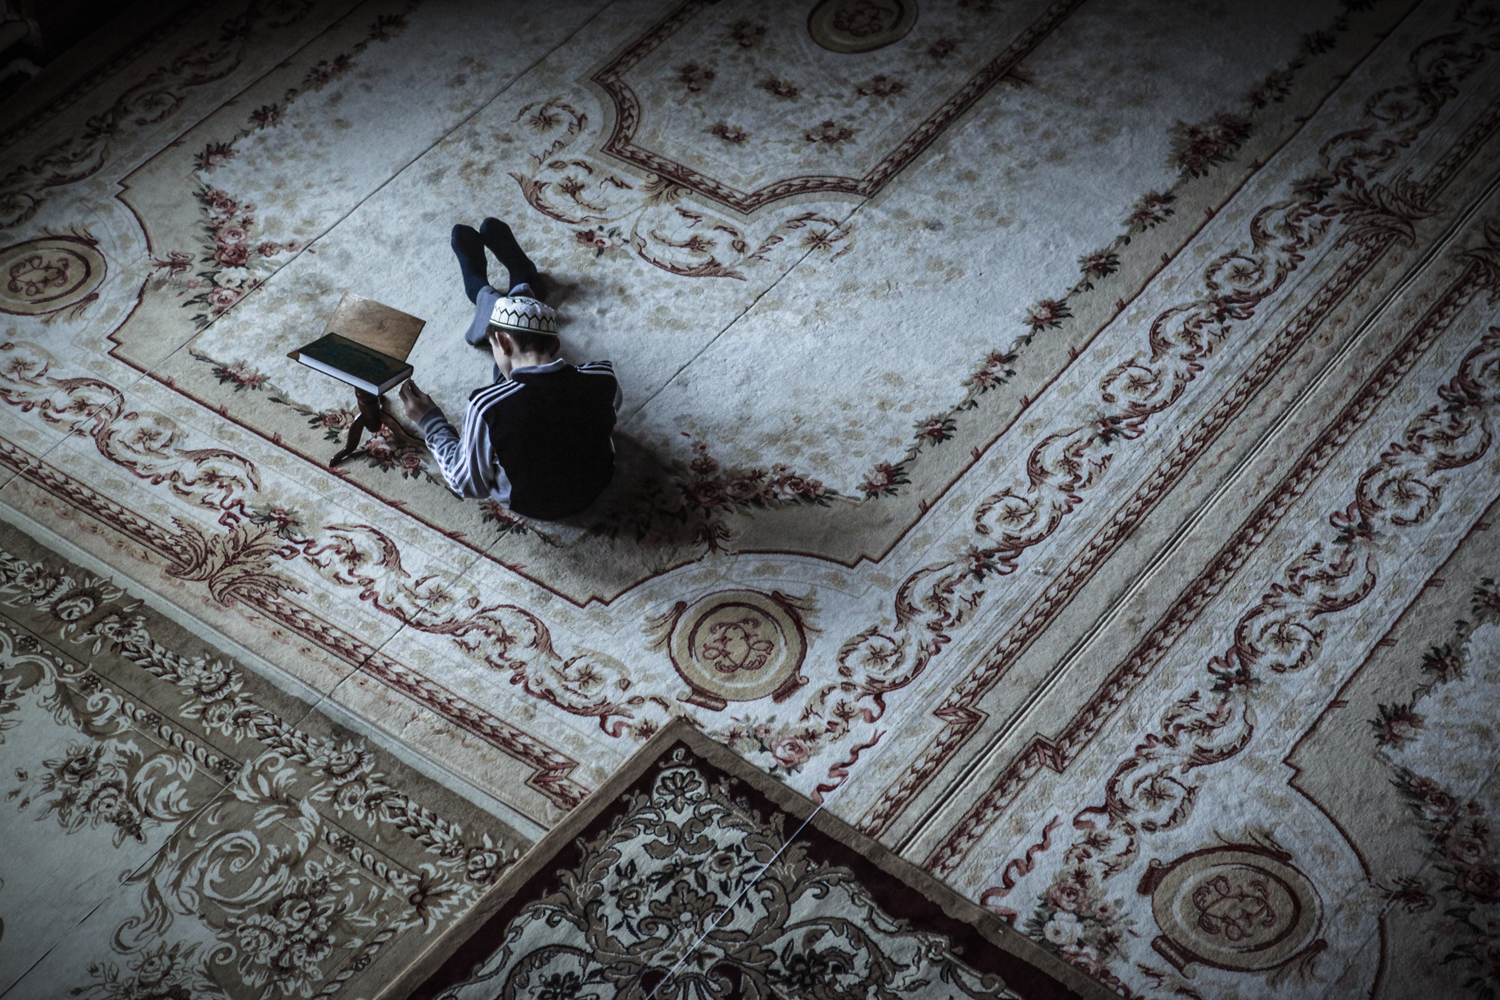 A boy studying Koran in a mosque in Makhachkala.